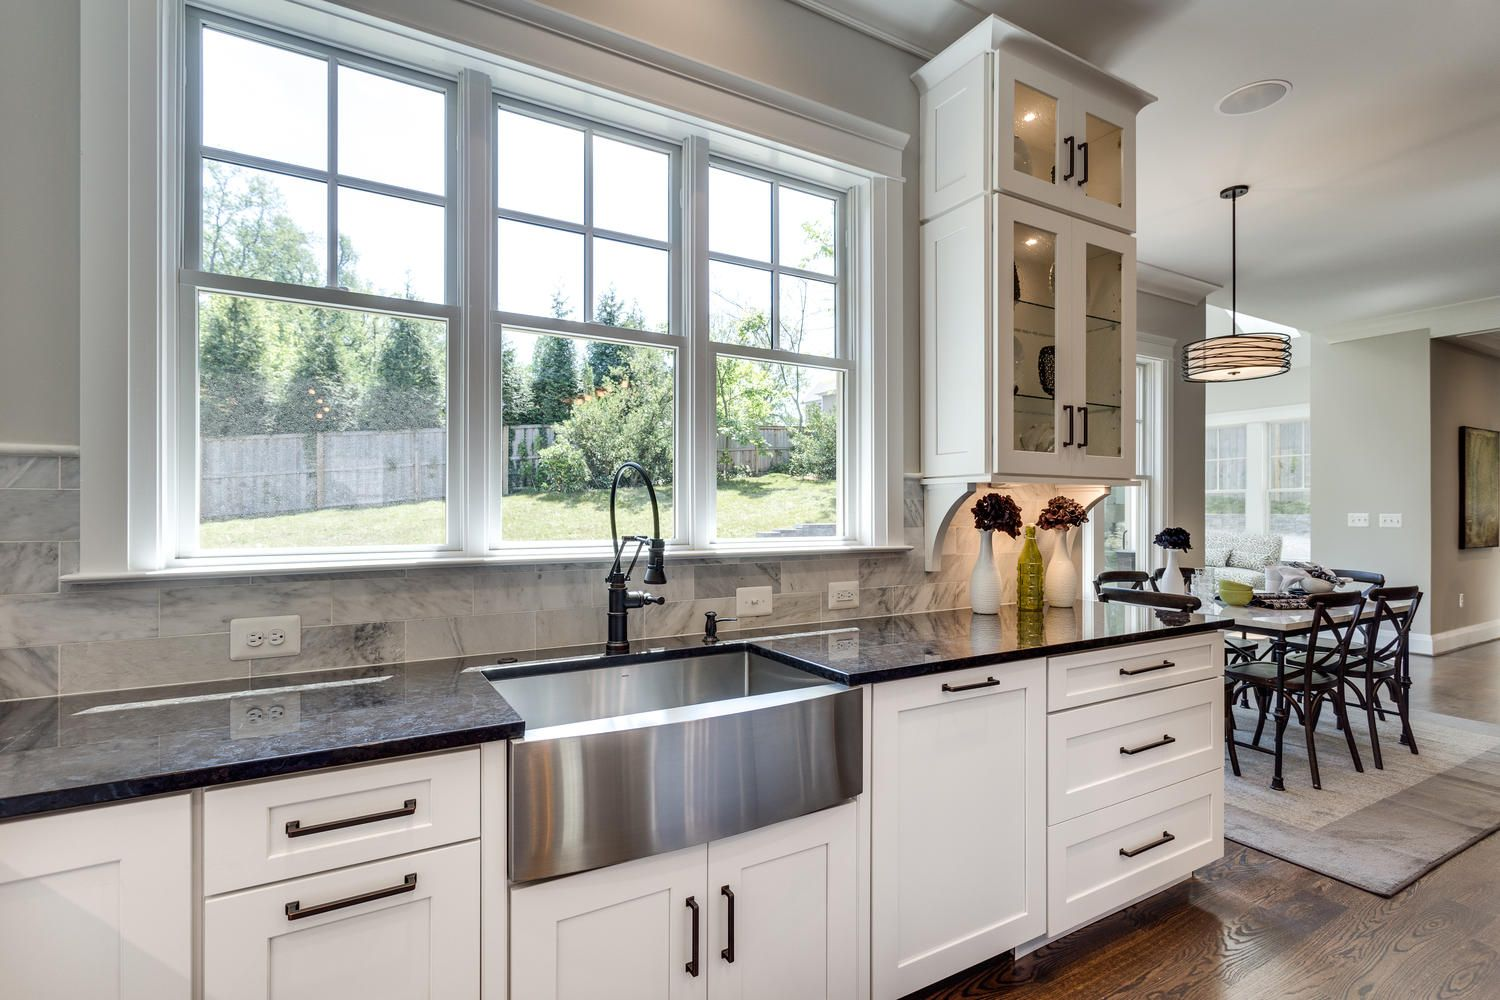 Apron Front Sink White Kitchen Cabinets Dark Granite Window Lighting New Home Construction Home Construction Custom Home Designs